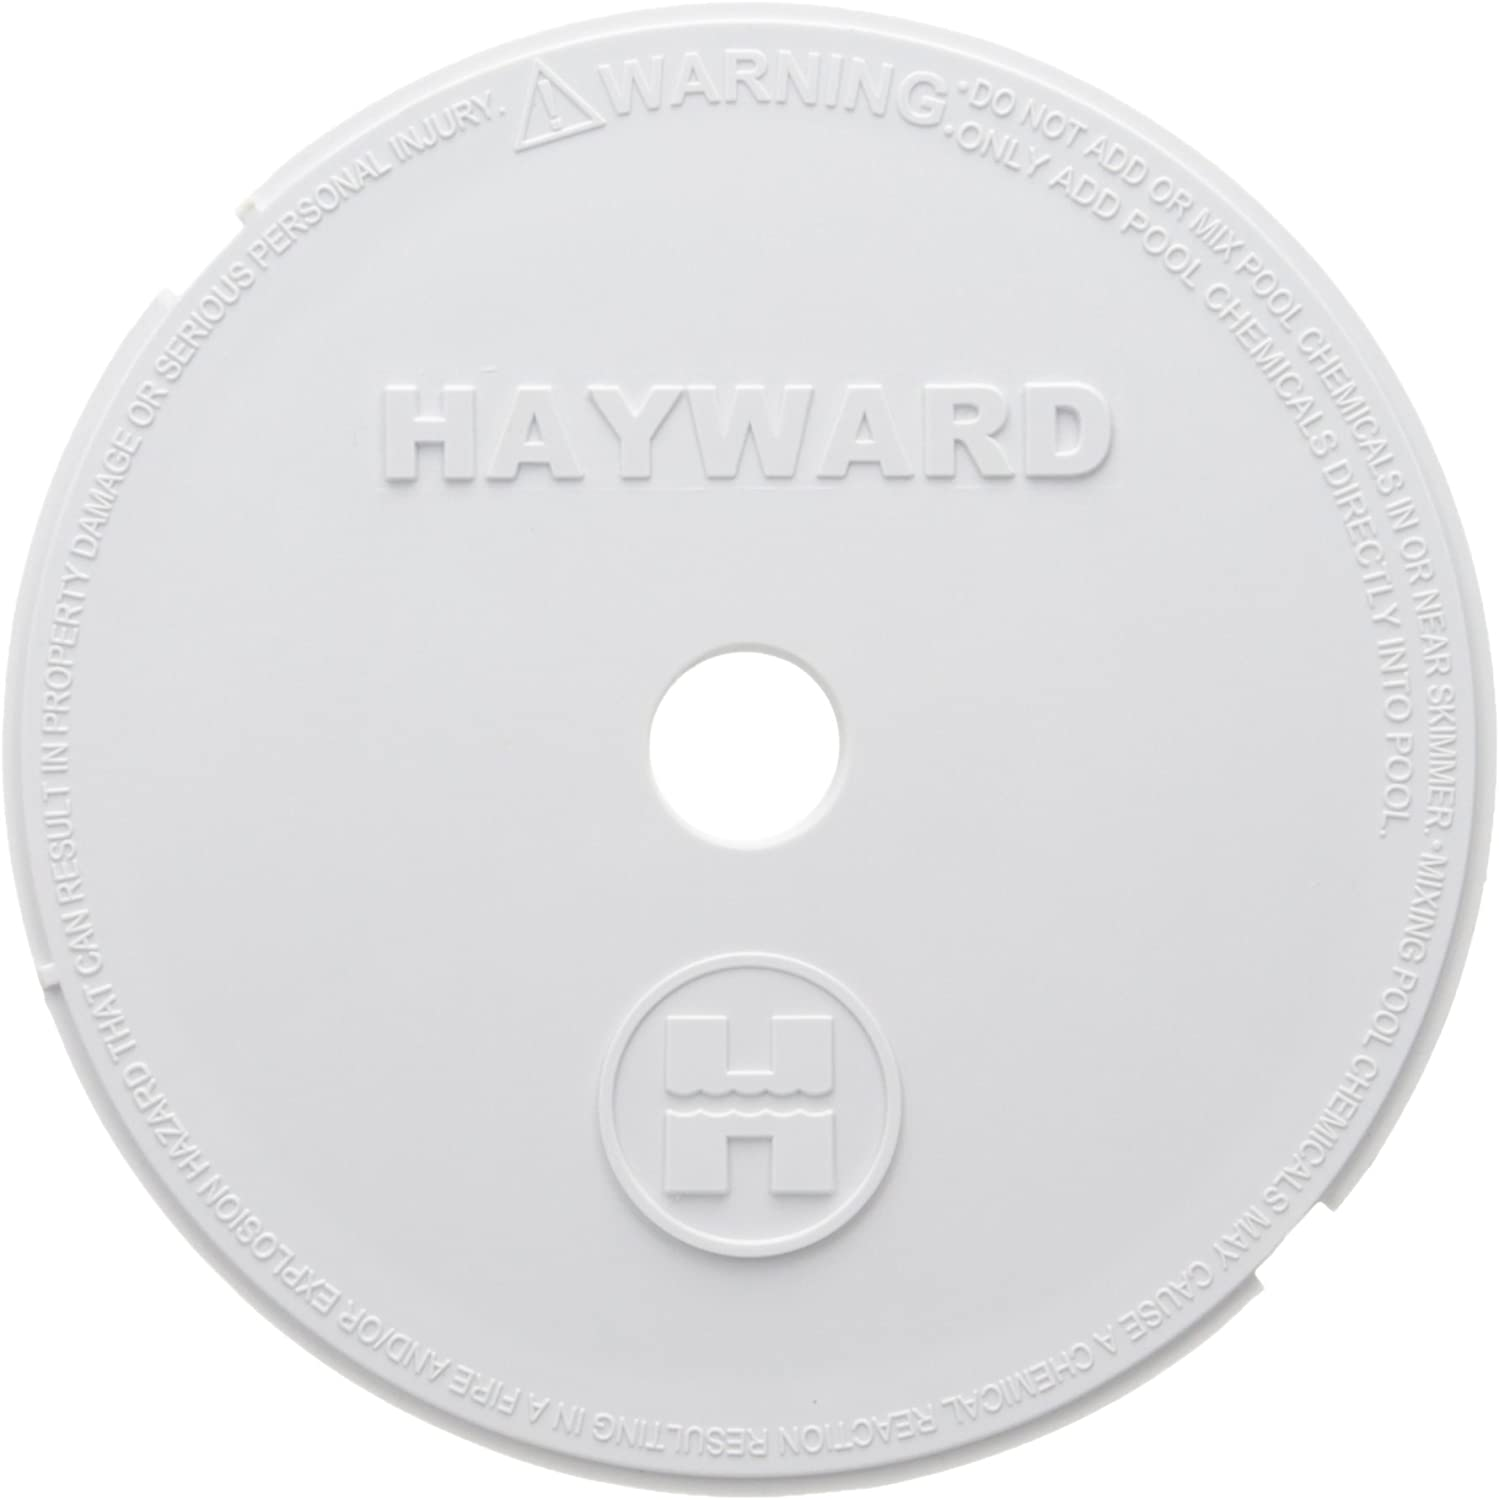 Hayward SPX1091B Skimmer Cover Replacement for Hayward Automatic Skimmers